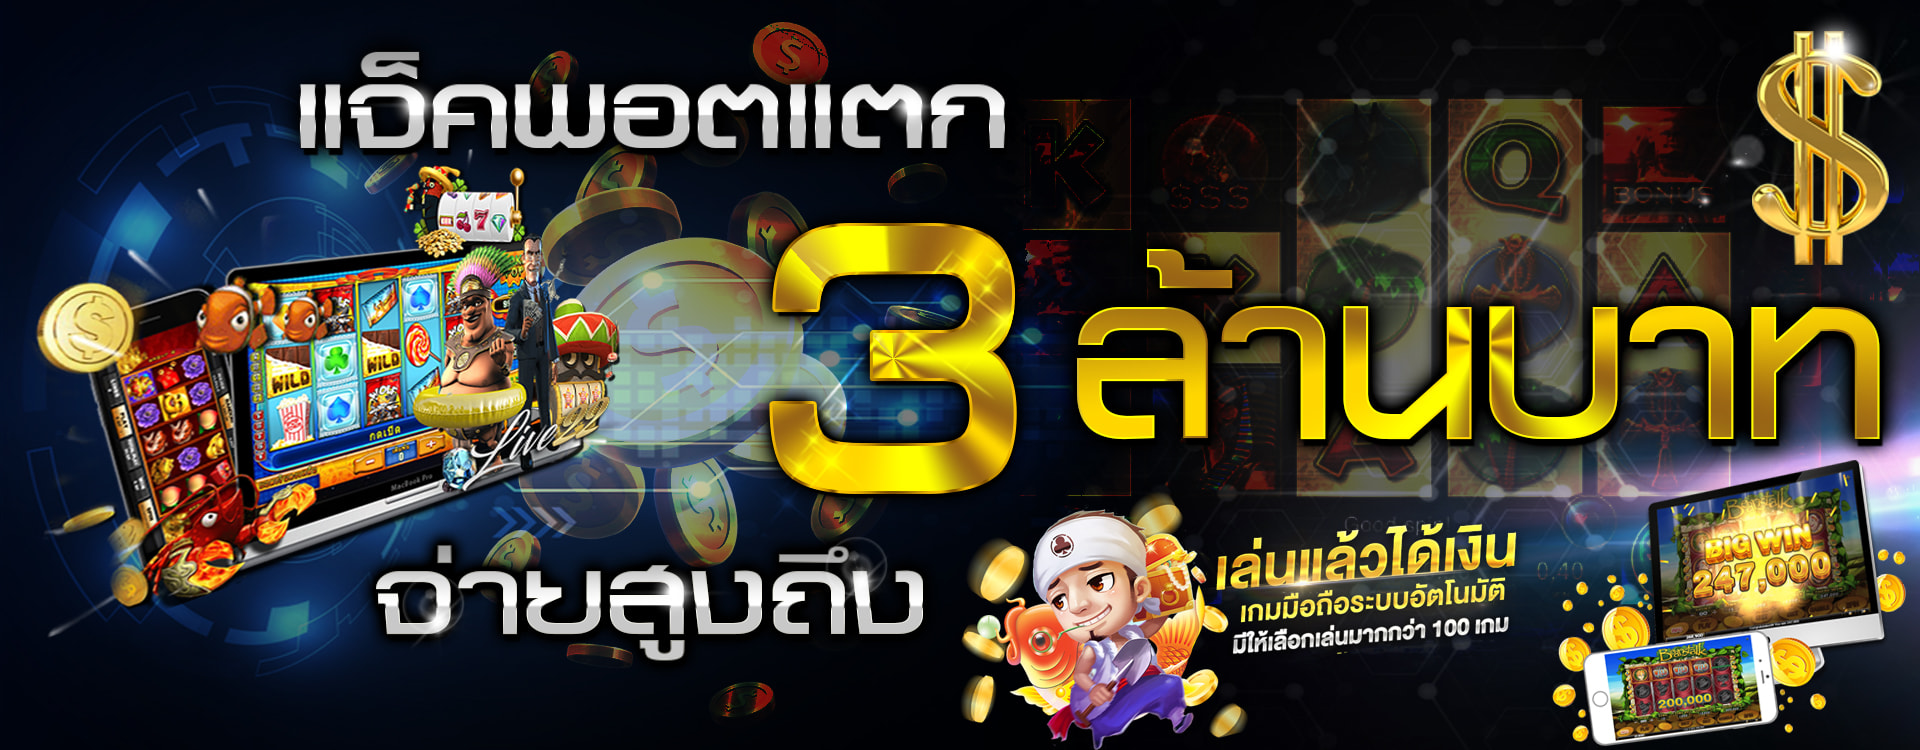 เกม_banner_1_optimized